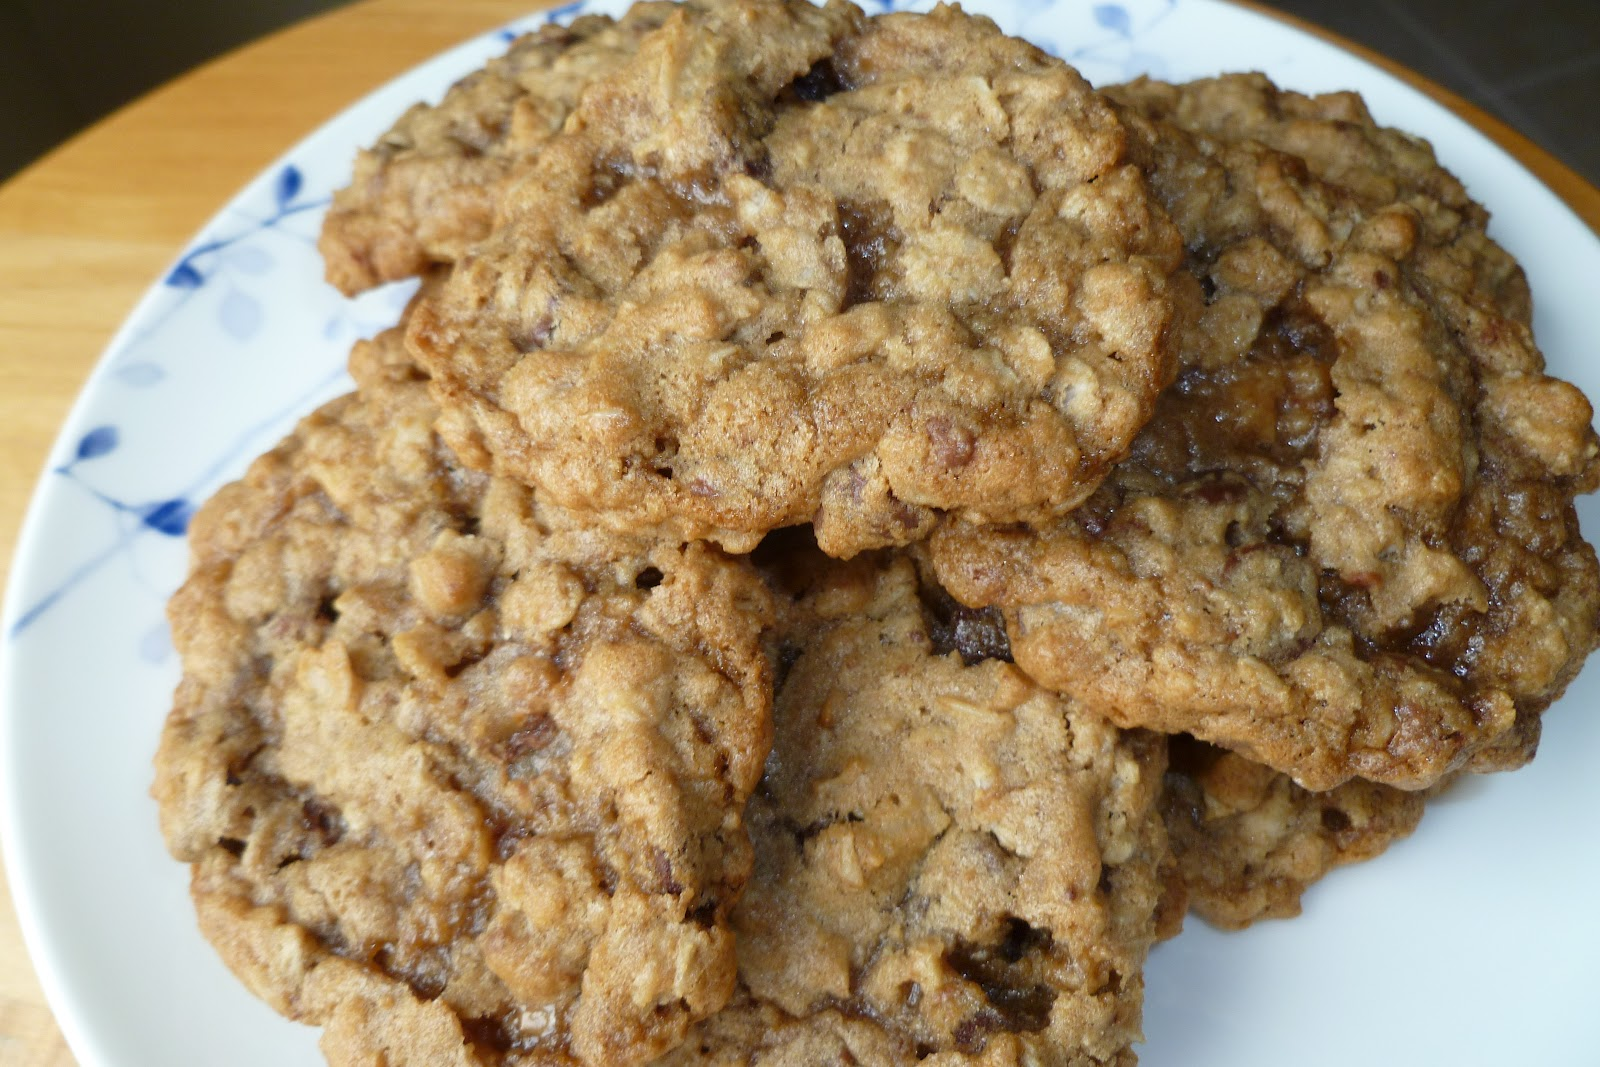 The Pastry Chef's Baking: Oatmeal Chocolate Chip Toffee Cookies